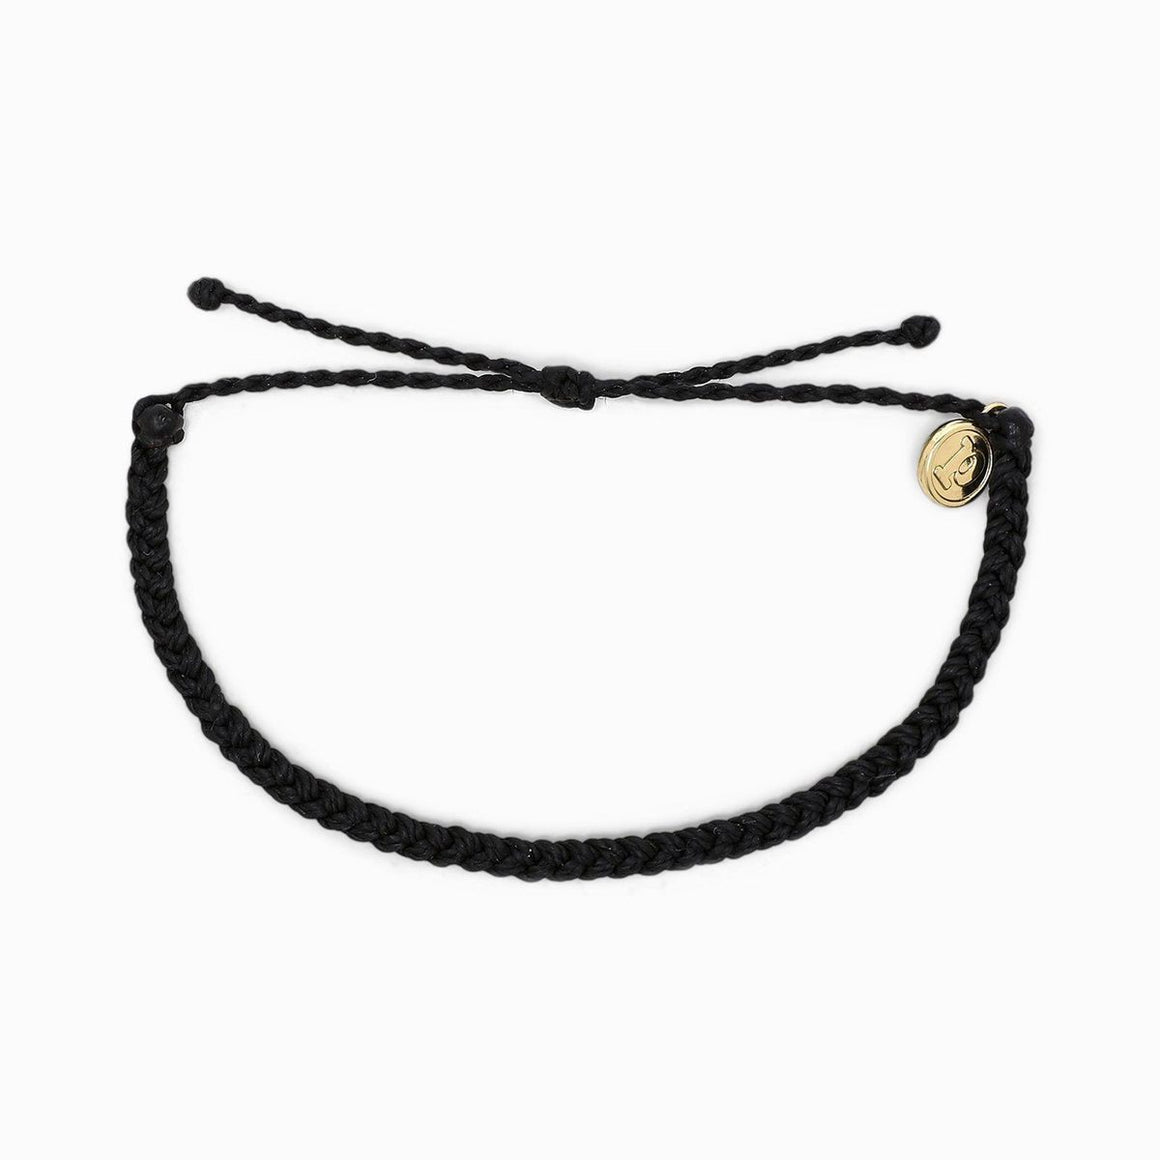 Pura Vida Bracelet - Black Mini Braided